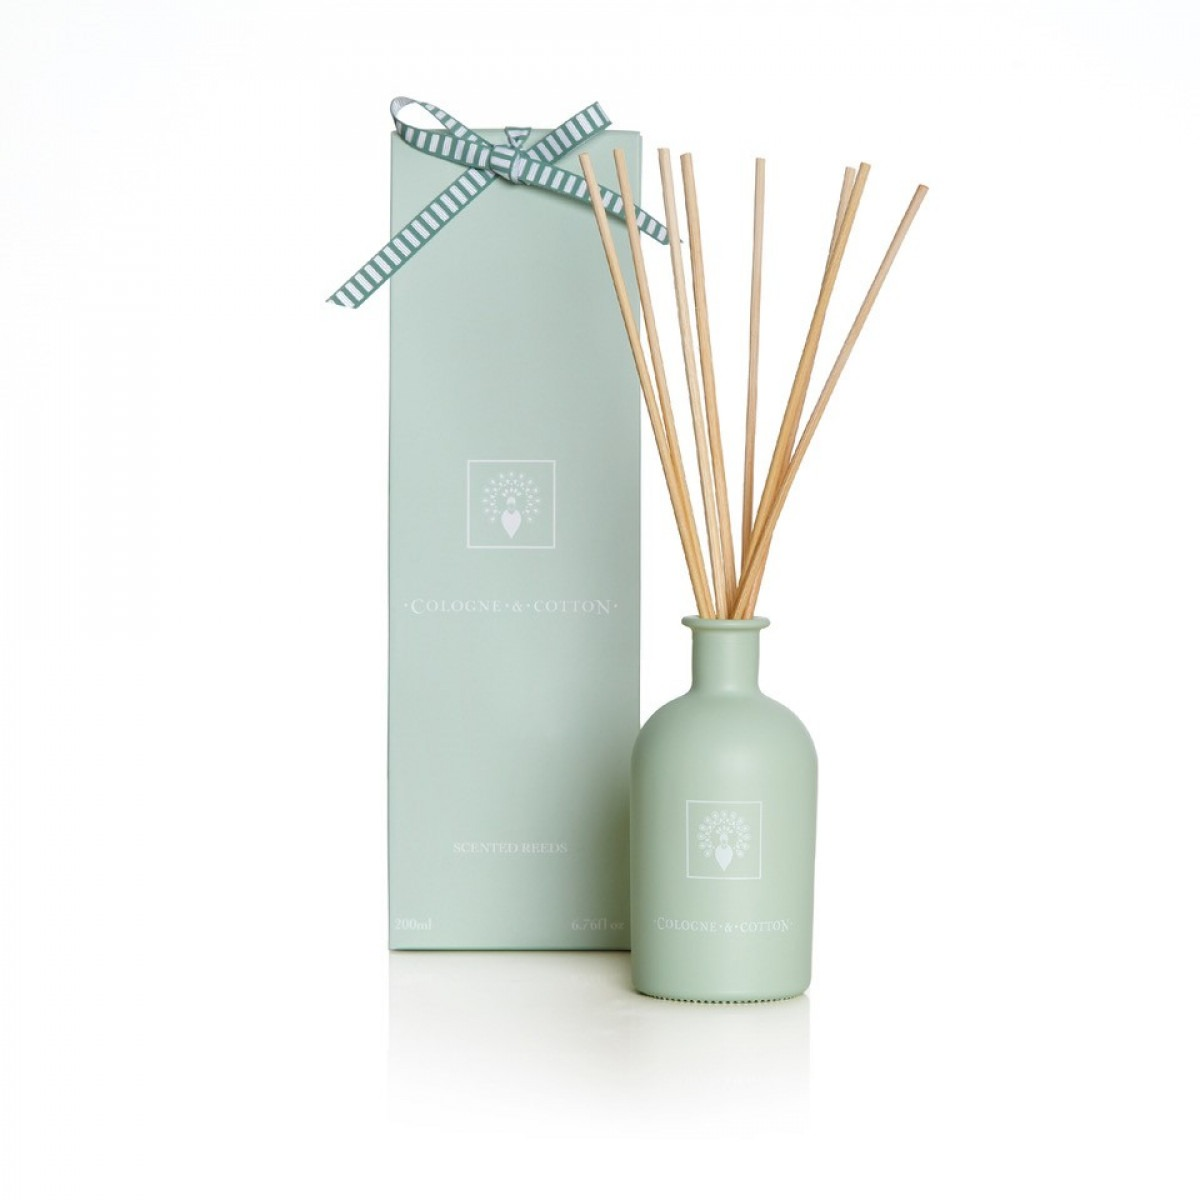 Cologne & Cotton Diffuser Velvet Rose & Oud 200ml